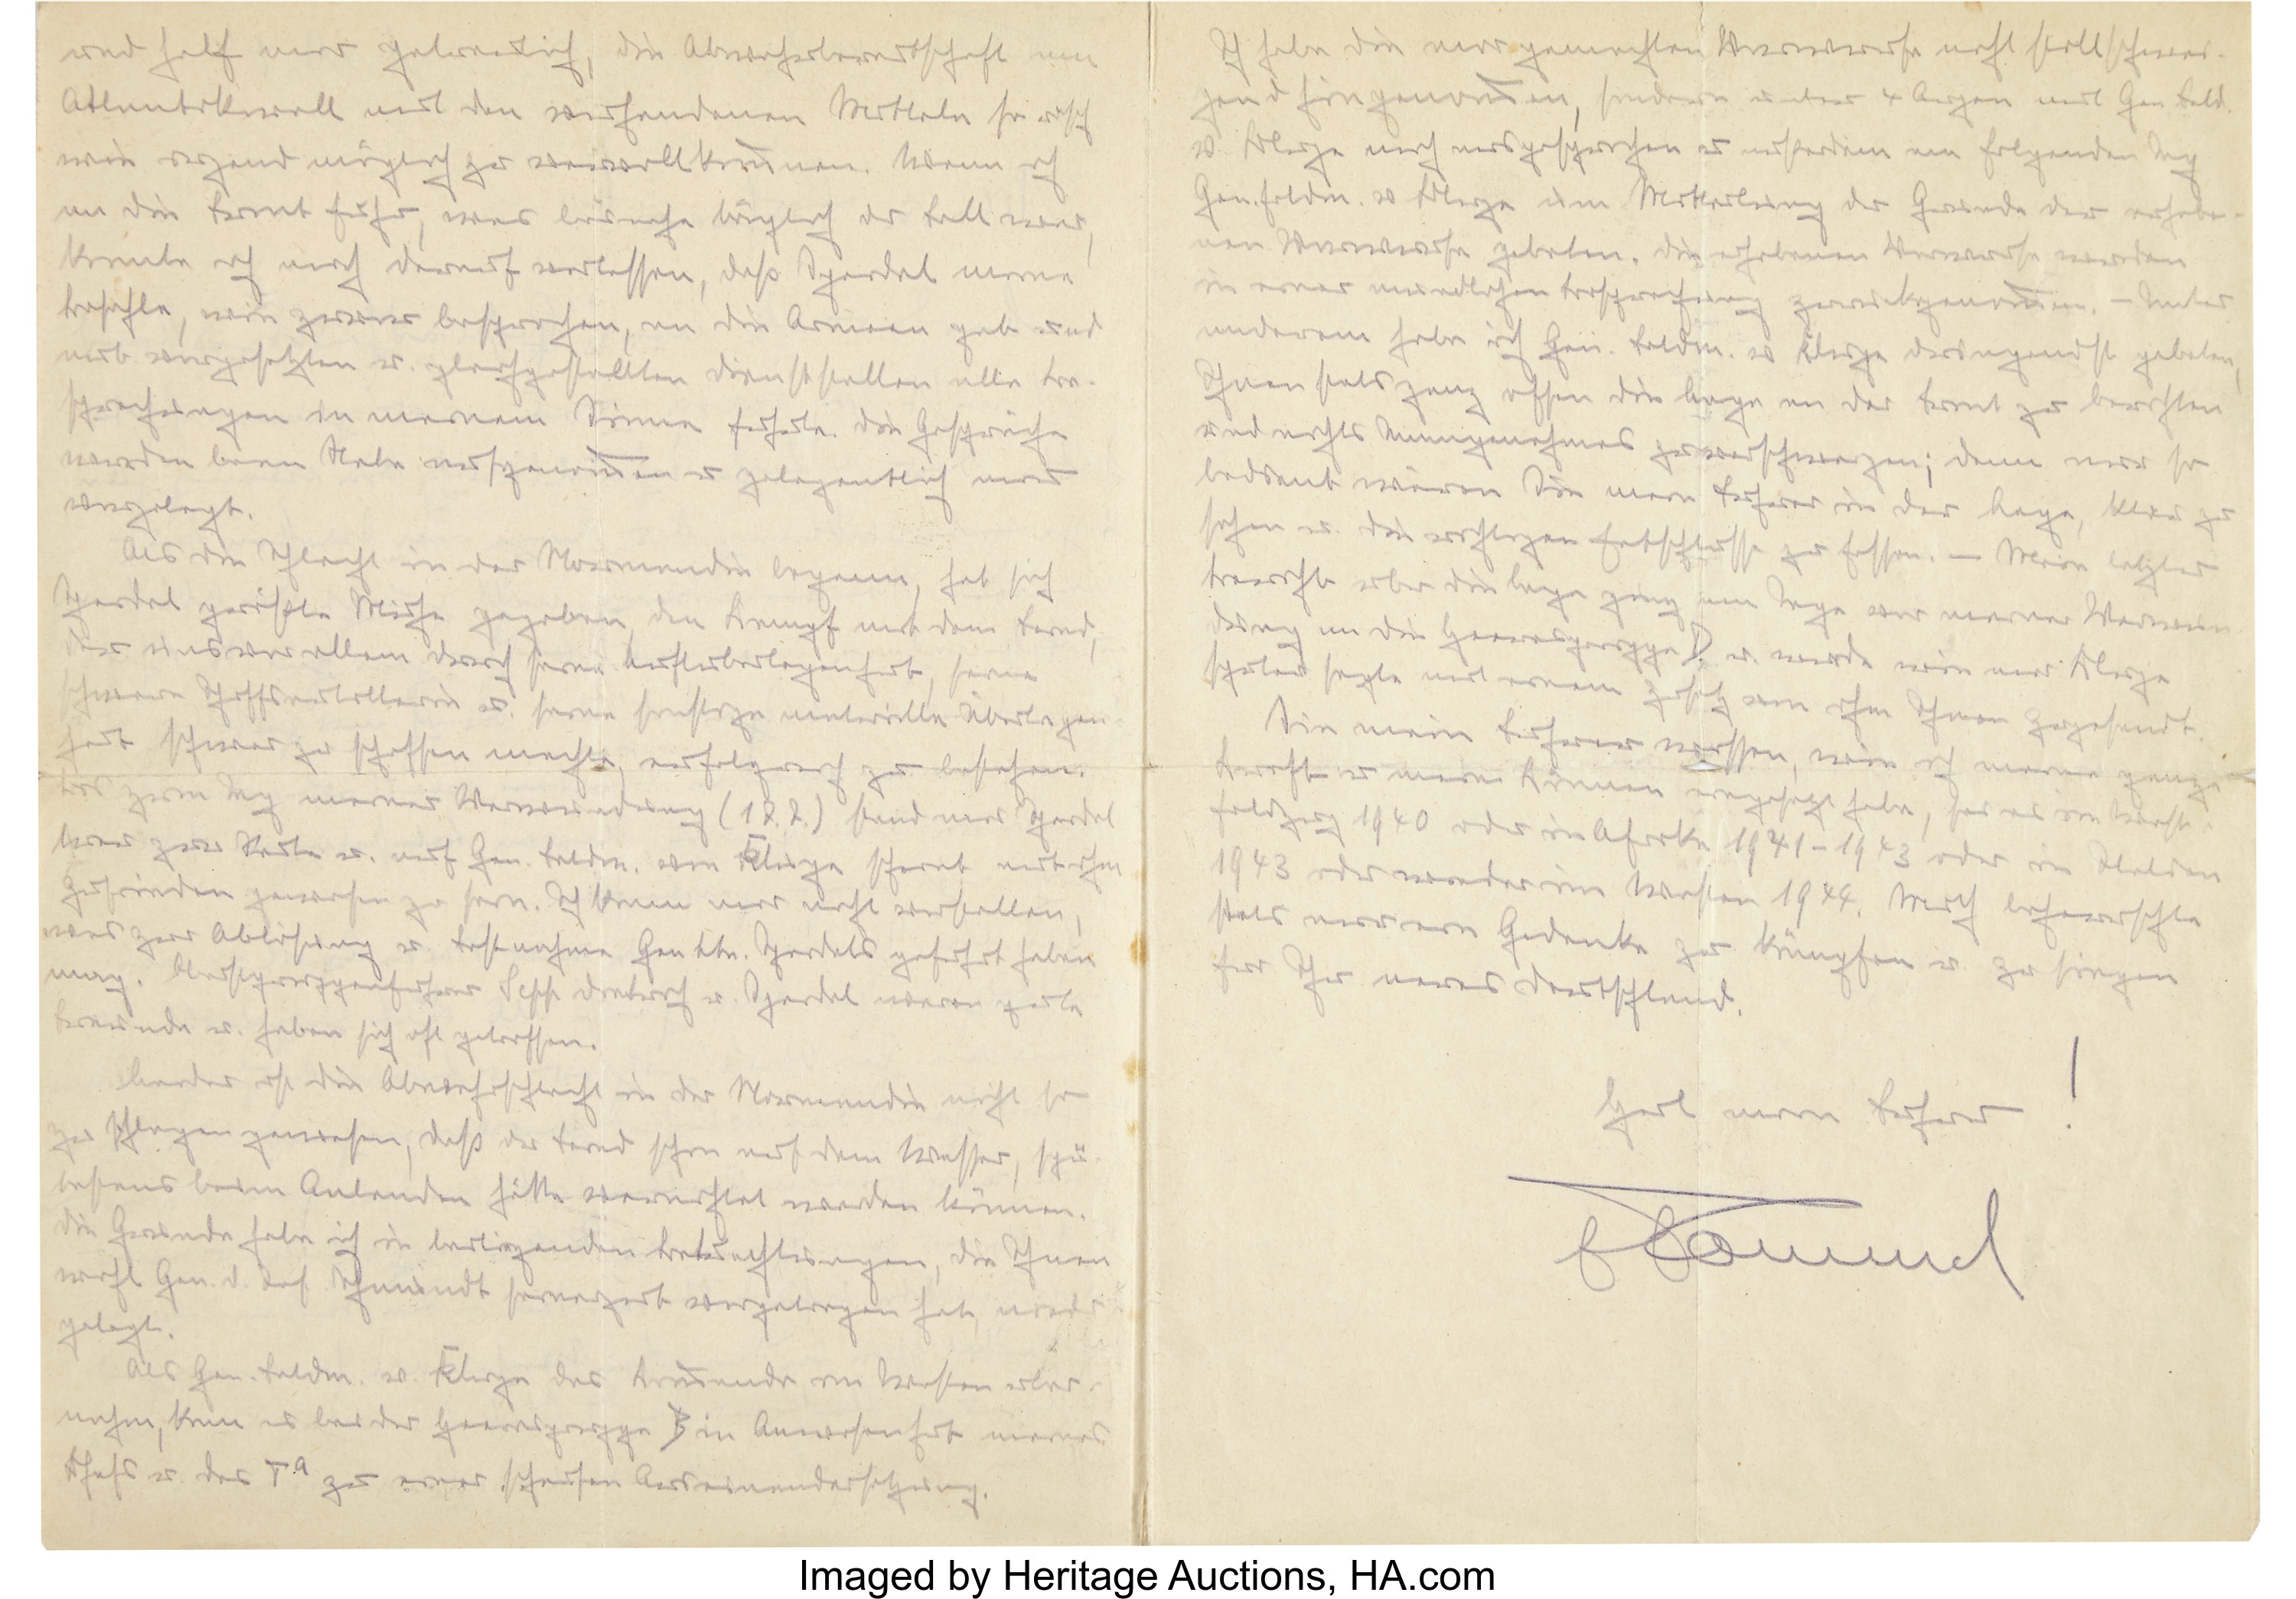 Erwin Rommel Autograph Letter Twice Signed to Adolf Hitler